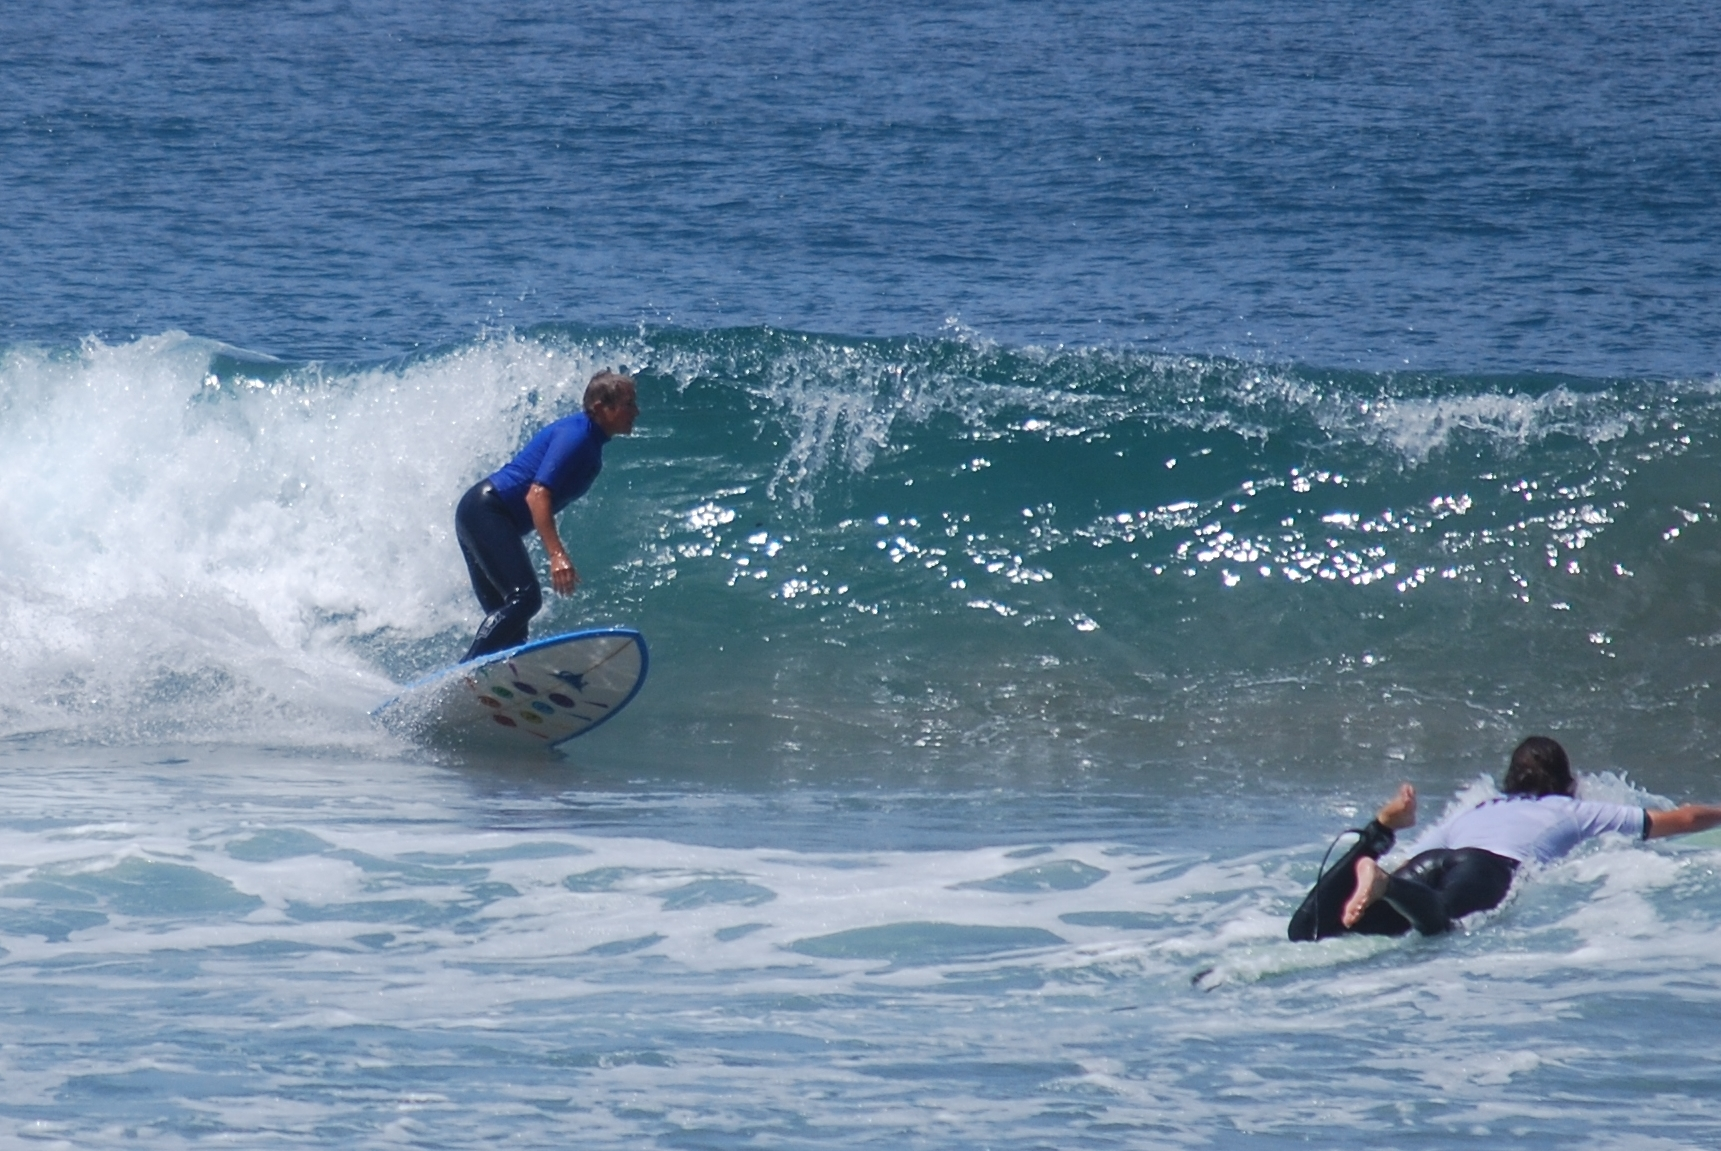 Lori Malkoff, MD surfing in the annual Stone Steps contest finals 2013